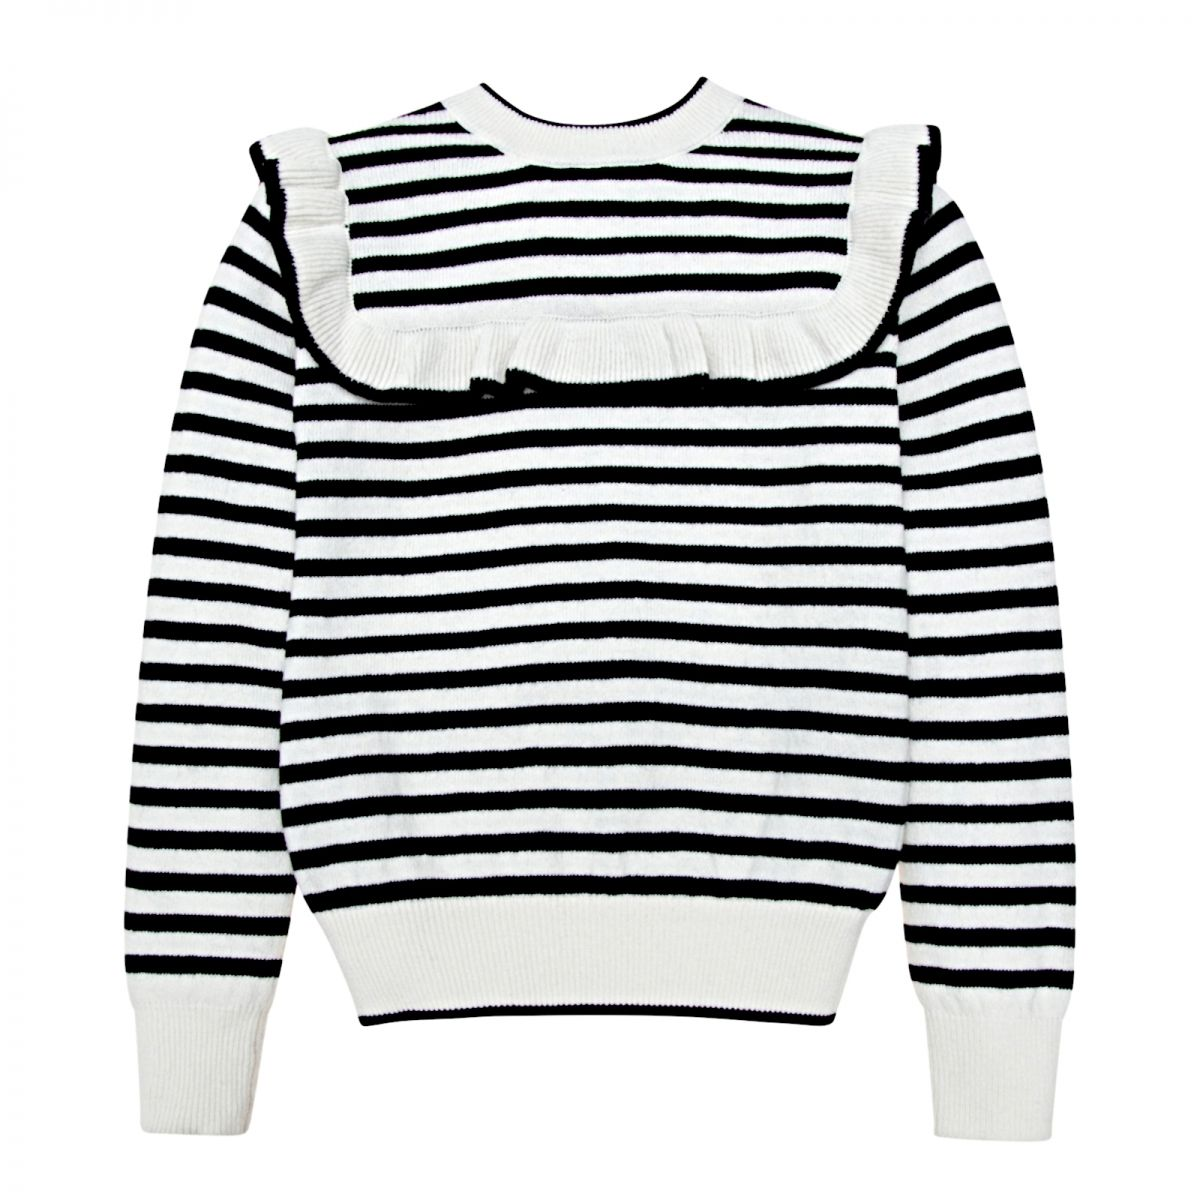 The New Society Abby pullover with stripes